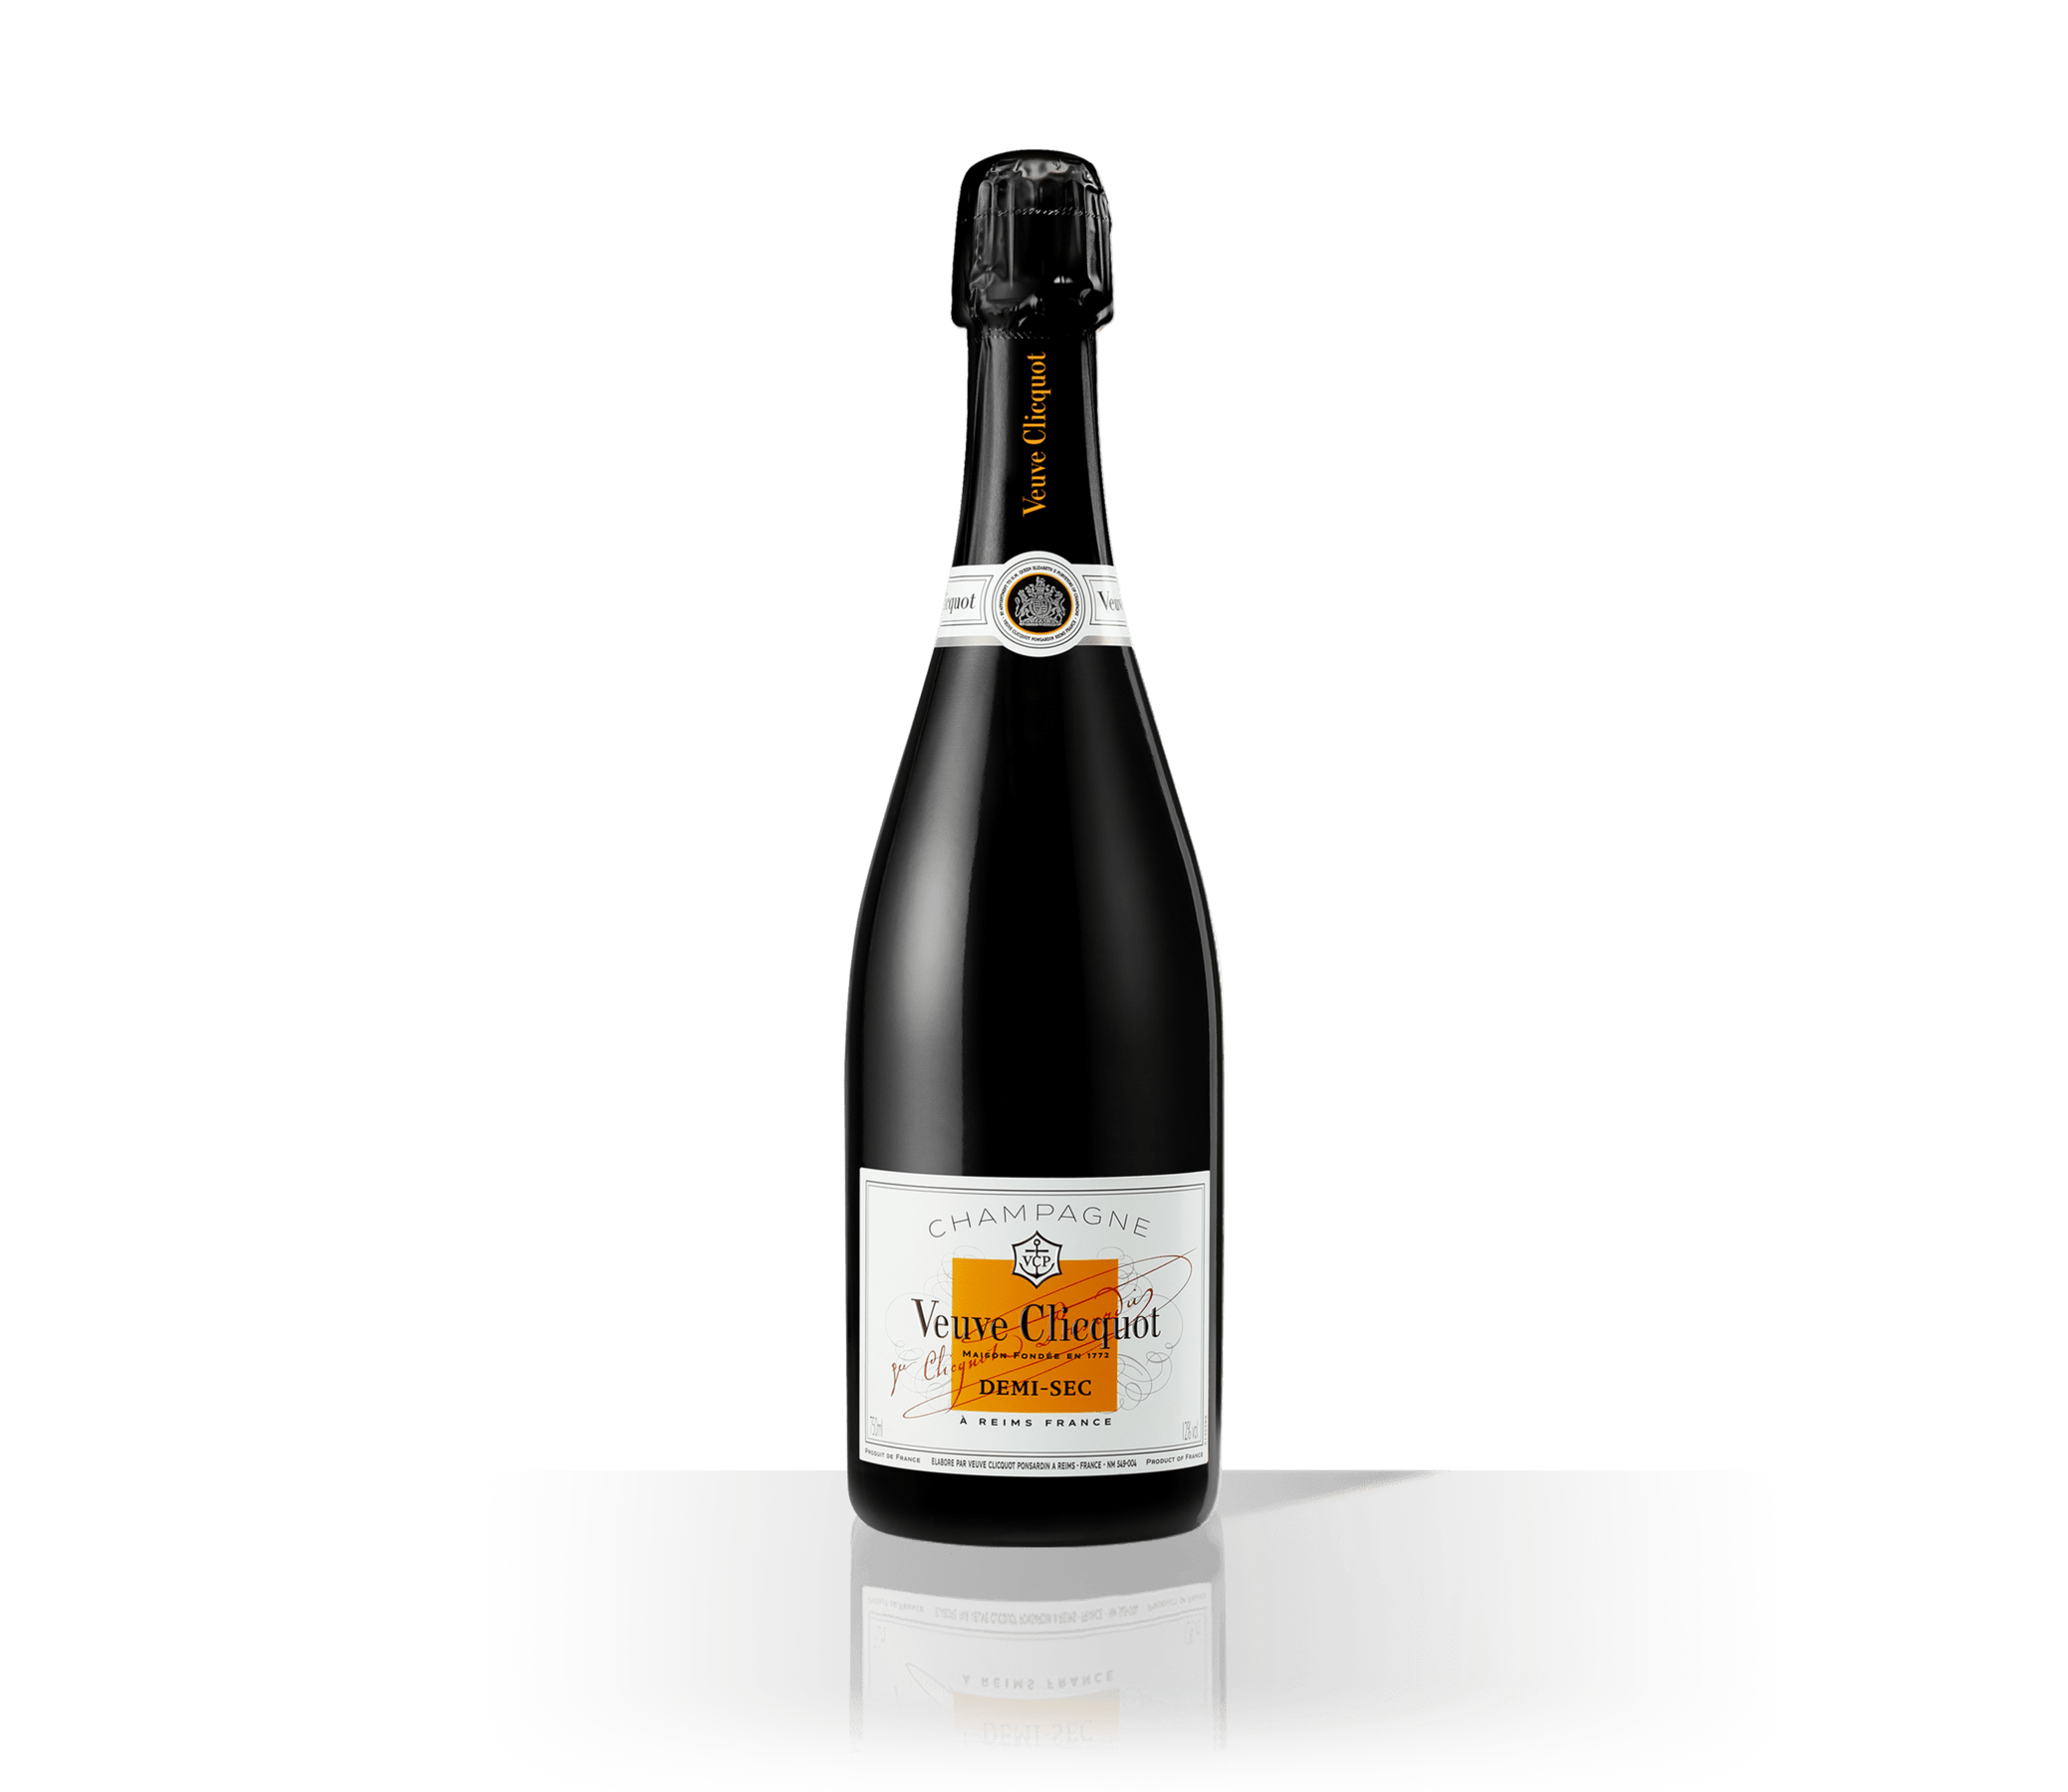 Bottle Veuve Clicquot Champagne Demi-Sec